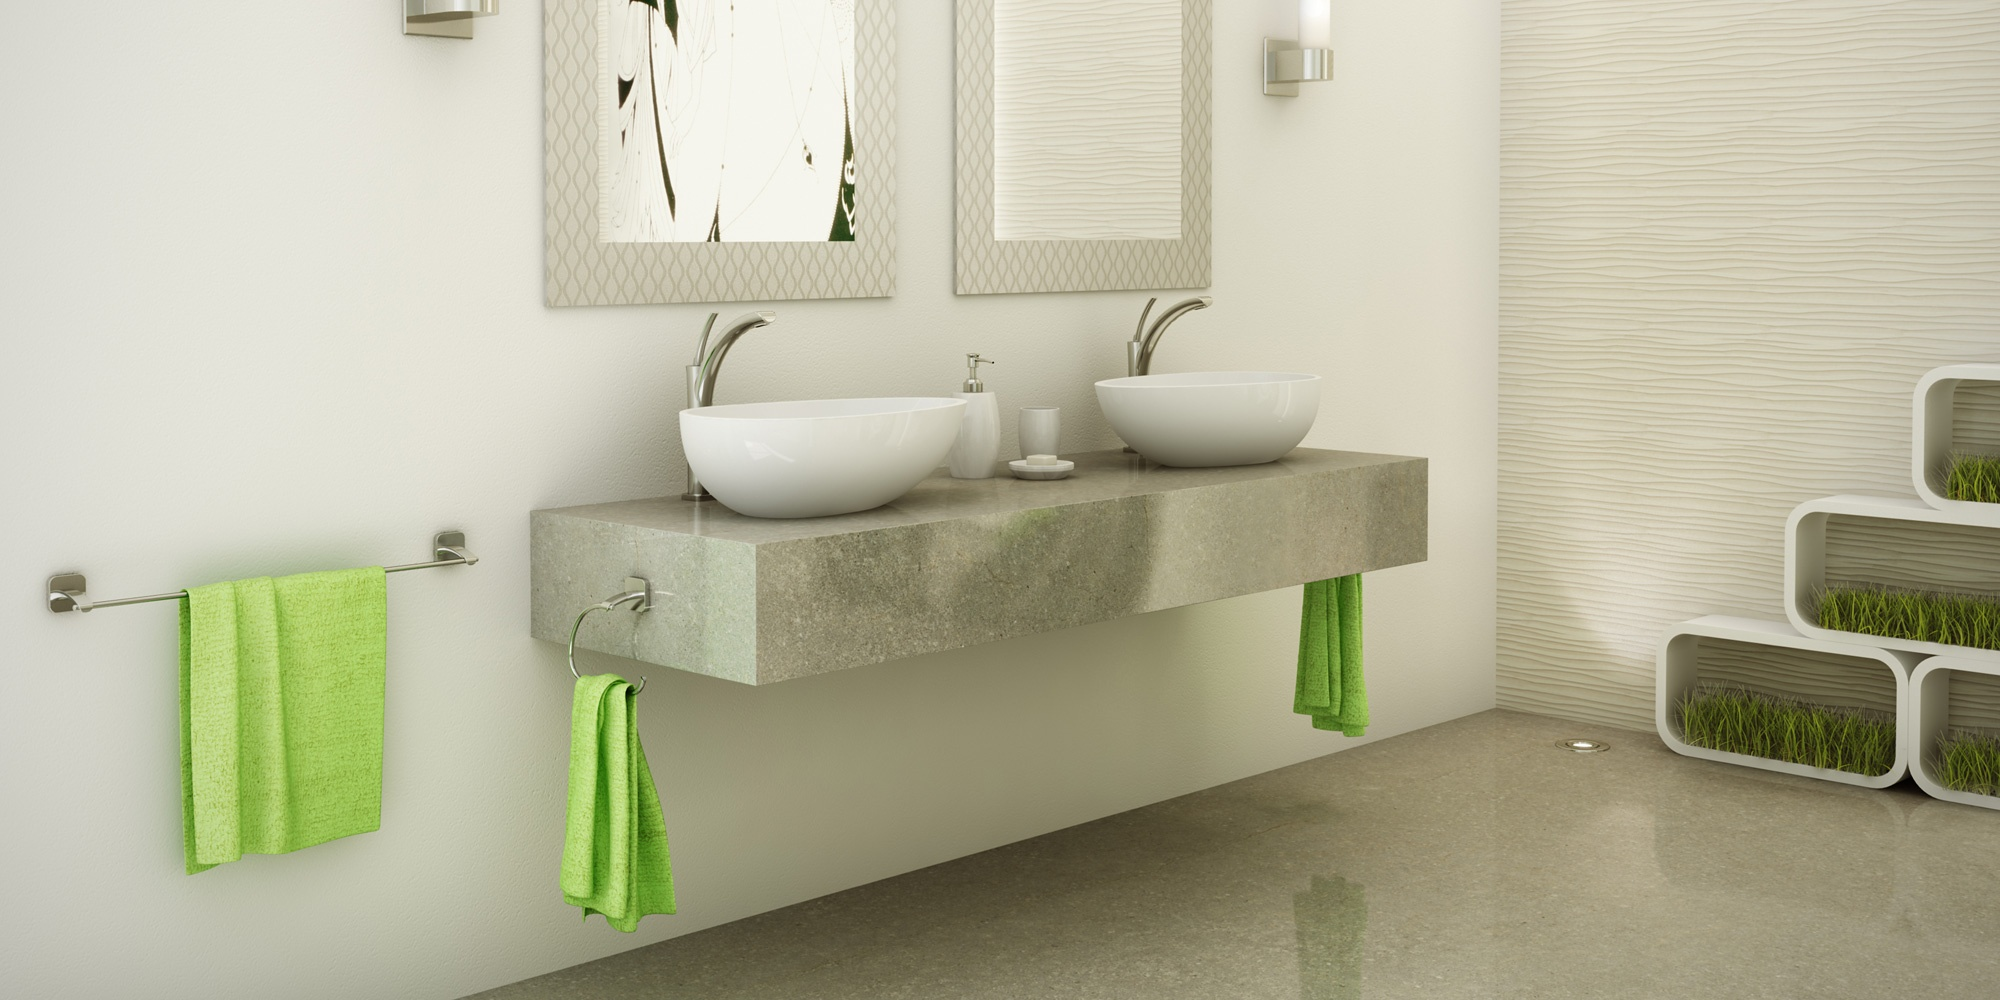 How to Choose the Best Material for Bathroom Fixtures - Riobel Faucets